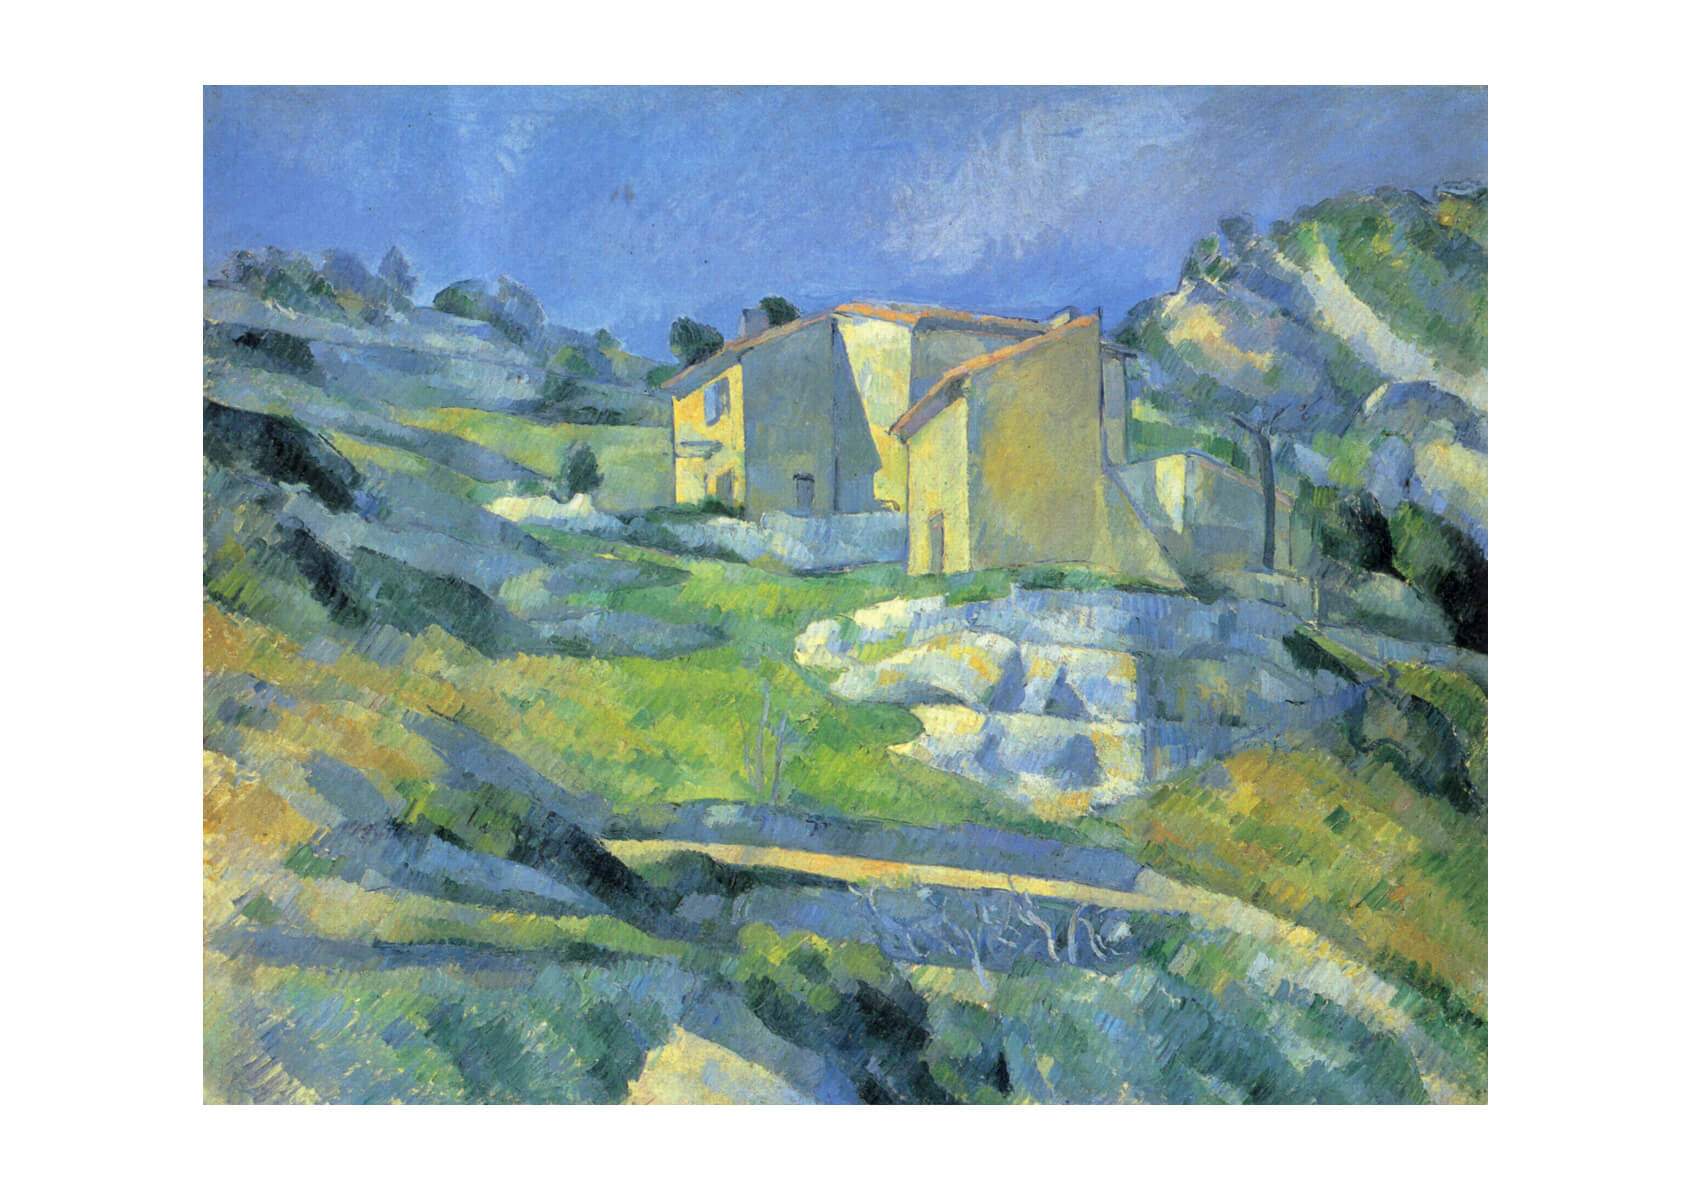 Paul Cezanne - Built on a Hill